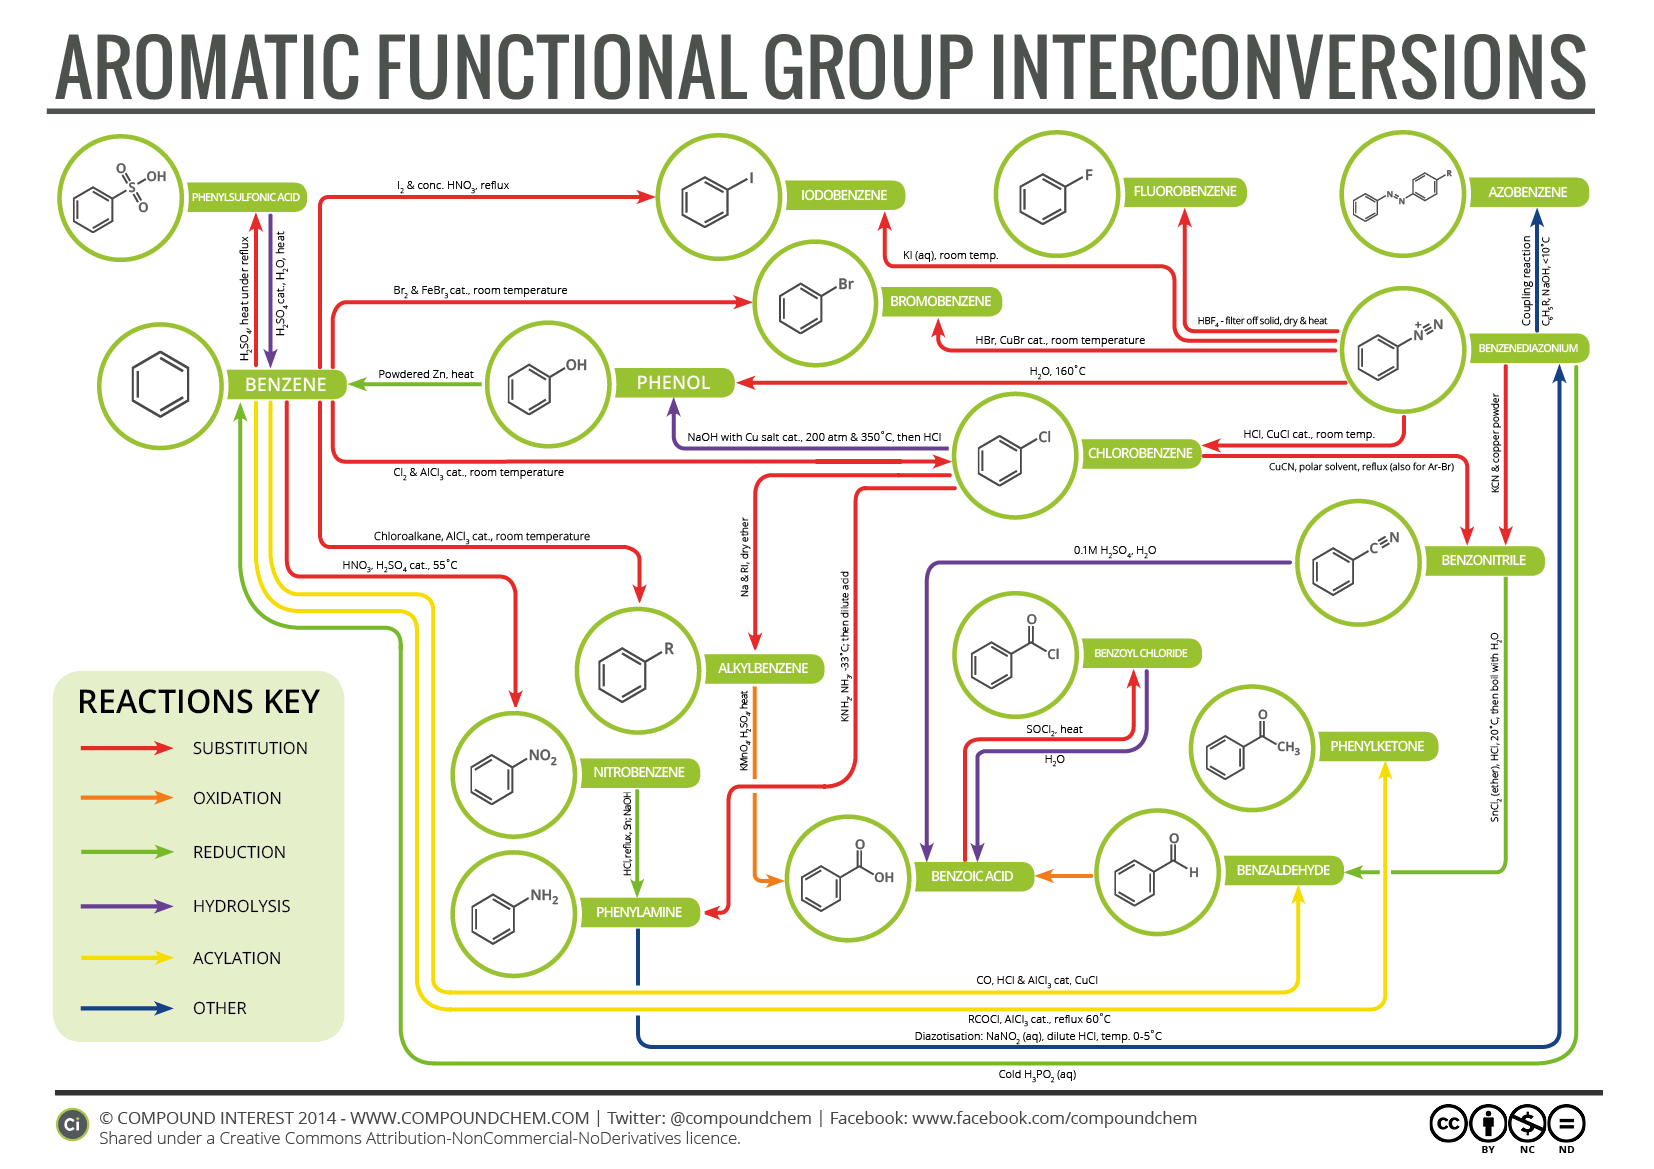 Aromatic Functional Group Interconversions